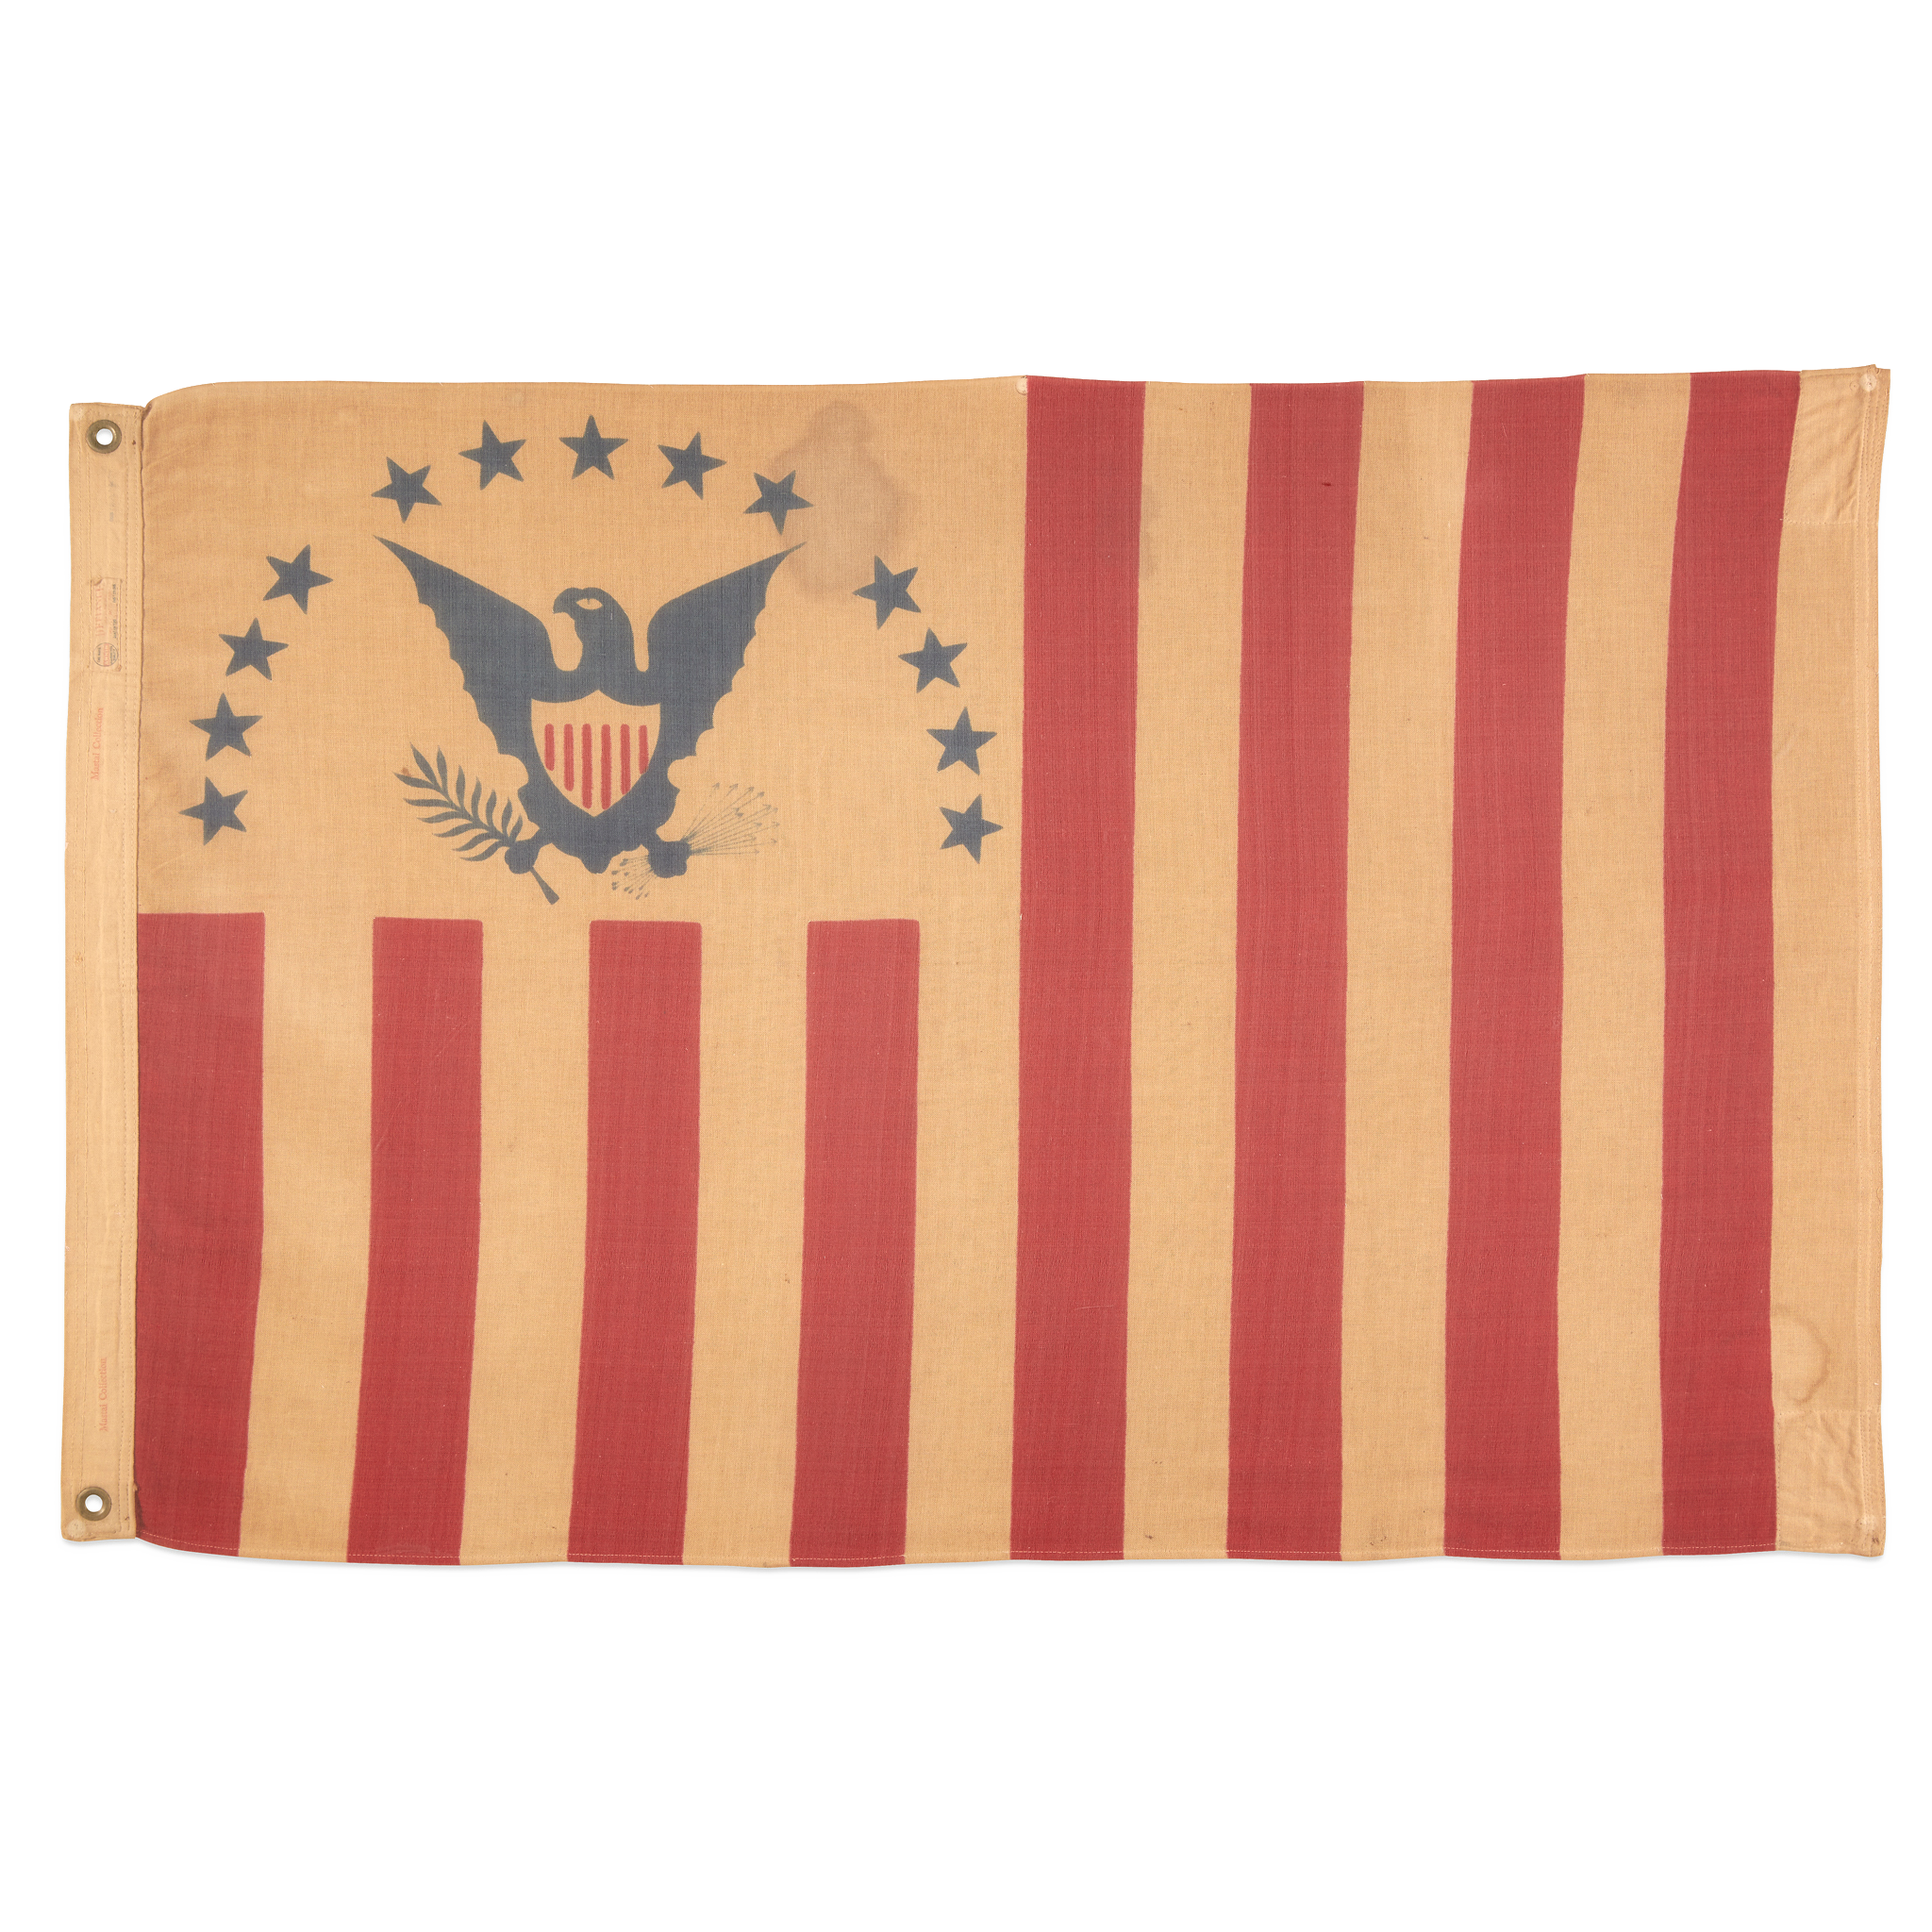 Lot 2 | A United States Revenue Cutter Service Ensign, Annin Flag Company (1847-present), early 20th century, $8,000-12,000